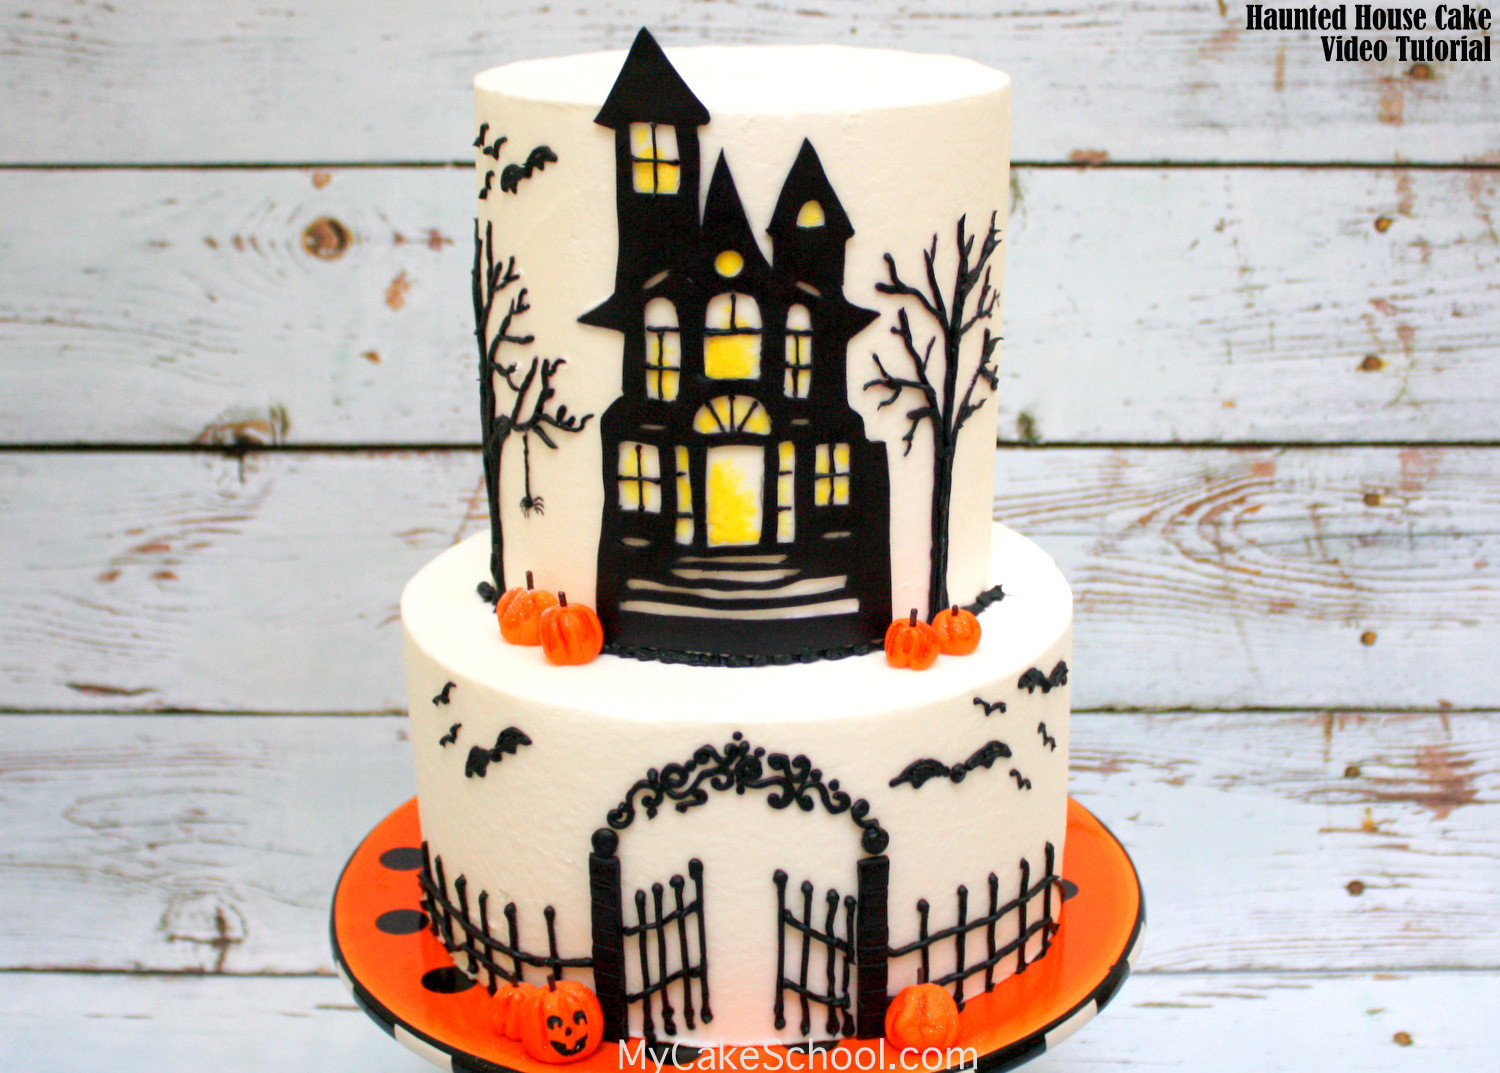 Halloween Fondant Cakes  How to Make a Haunted House Cake Cake Decorating Video